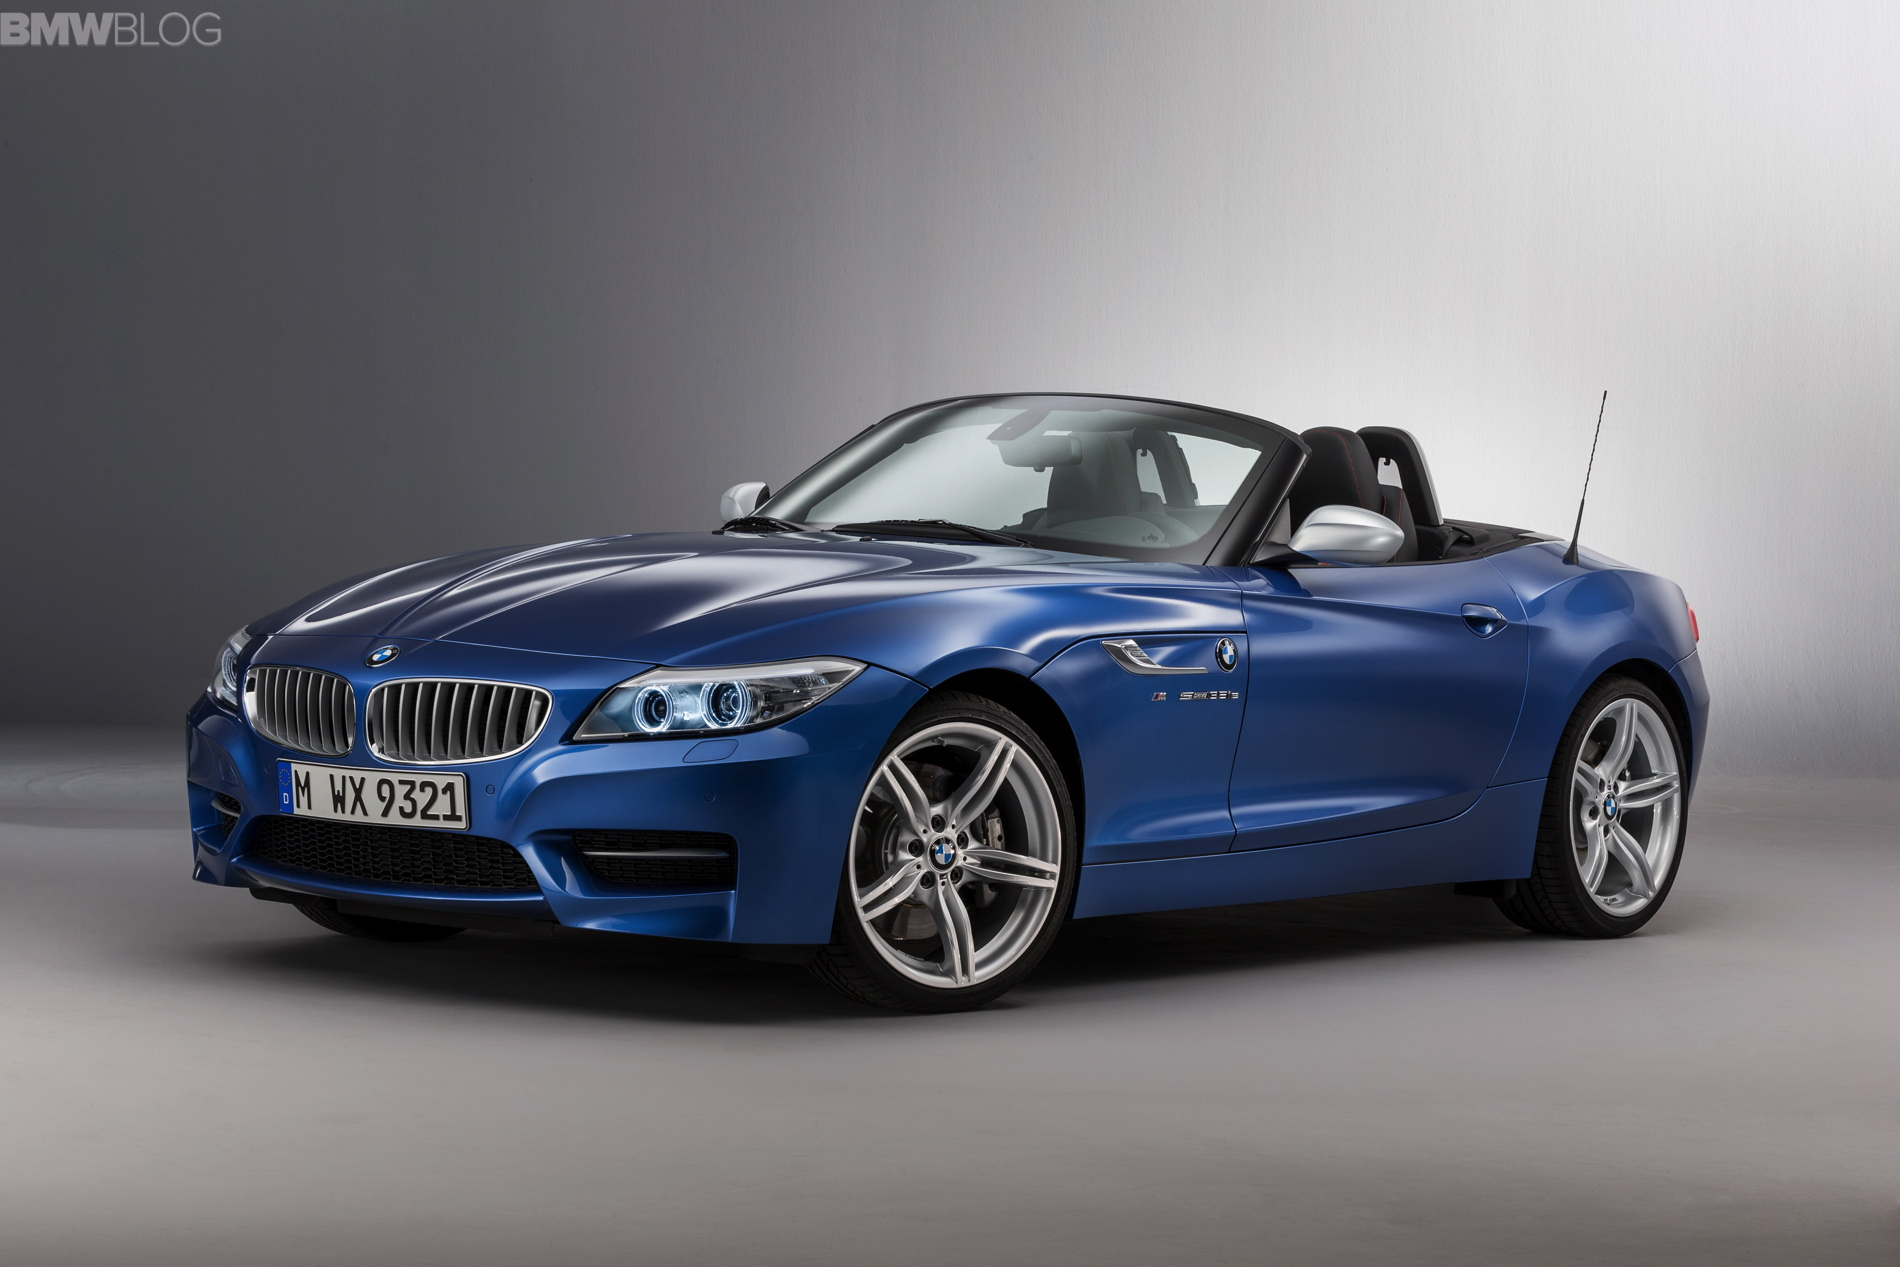 Bmw Model Upgrades For The Summer Of 2015